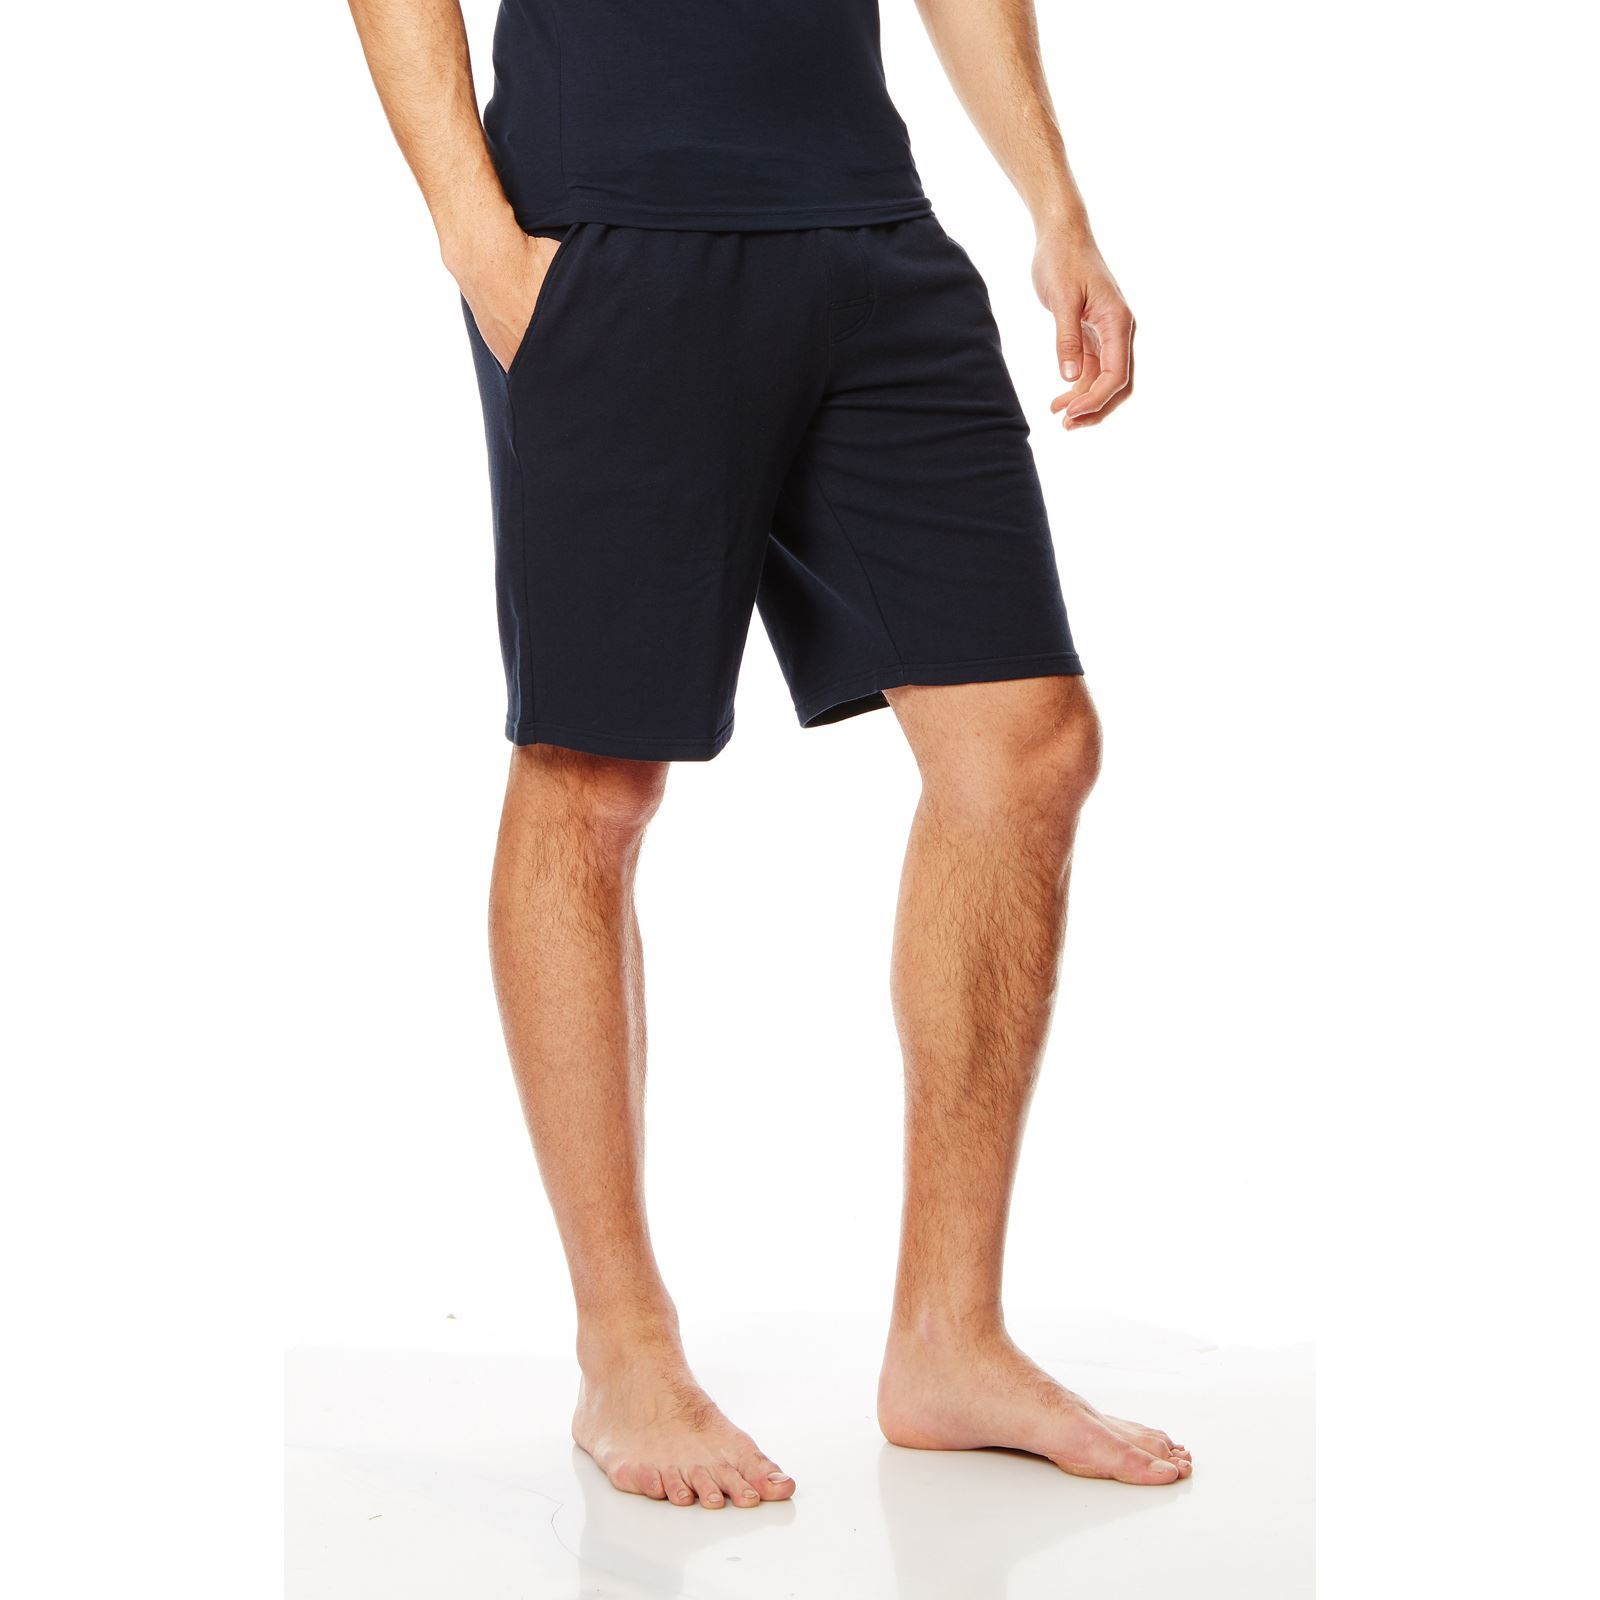 Bermuda Shorts for Men We invite you to experience TABS. Expertly tailored for a flattering, straight-leg fit, the traditional cut is balanced with bold colours and flamboyant linings.